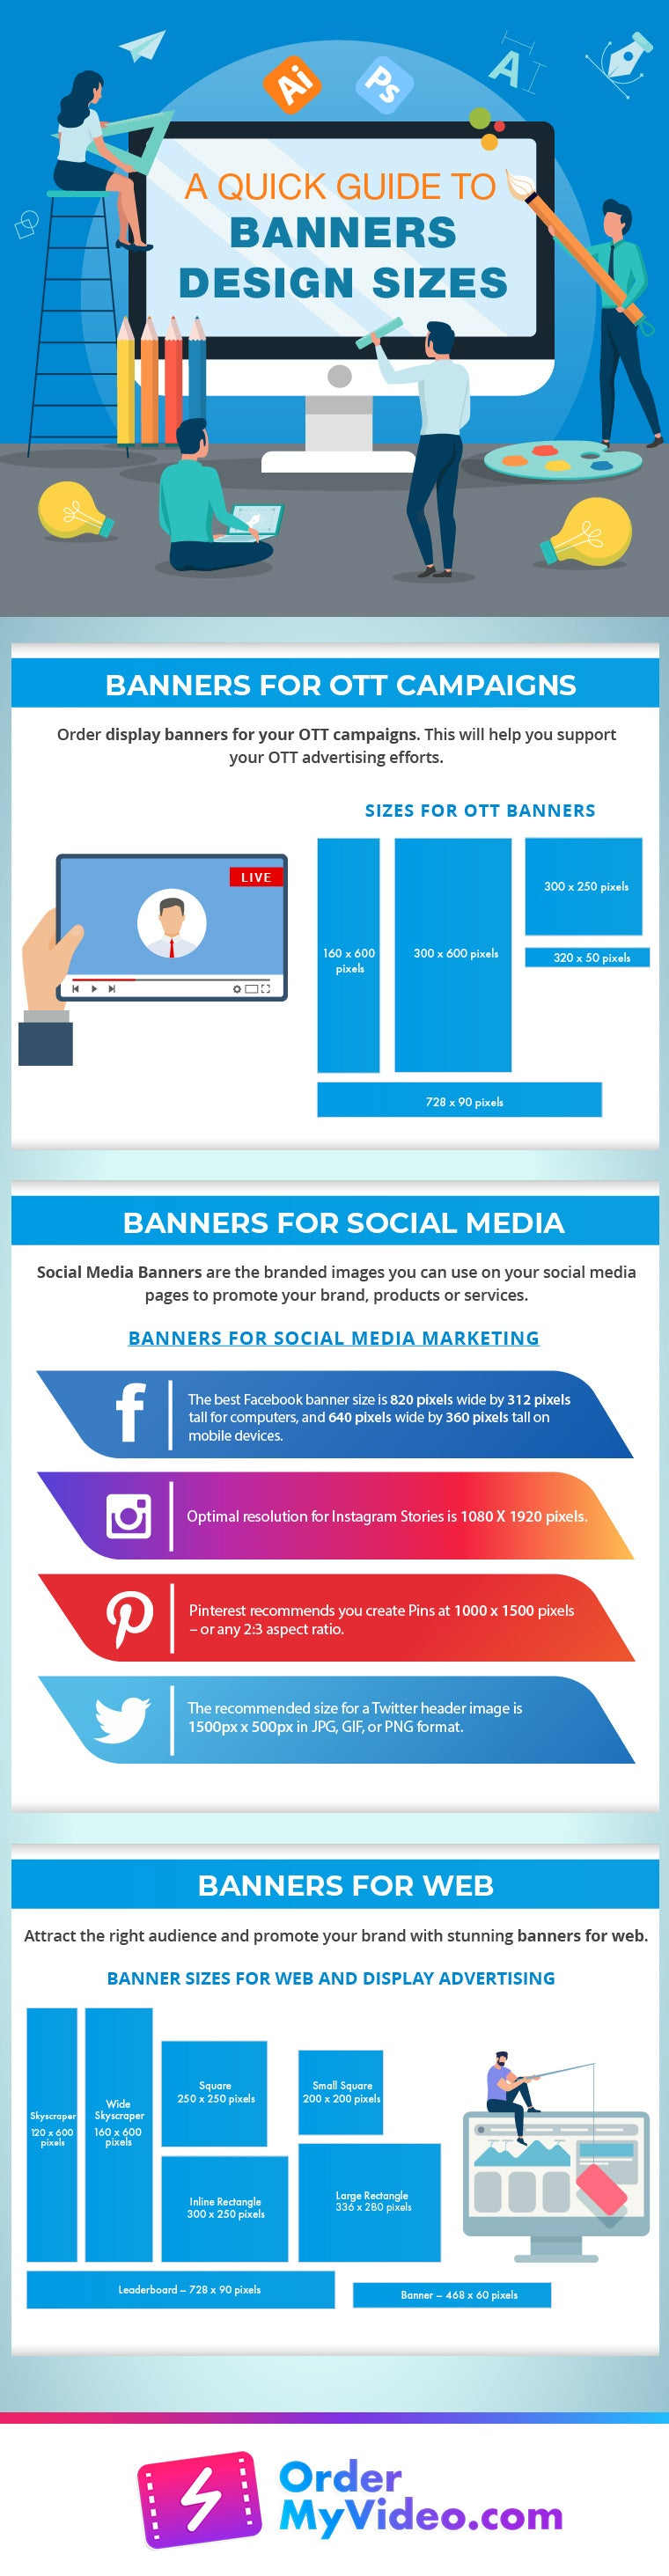 A Quick Guide to Banners Design Sizes